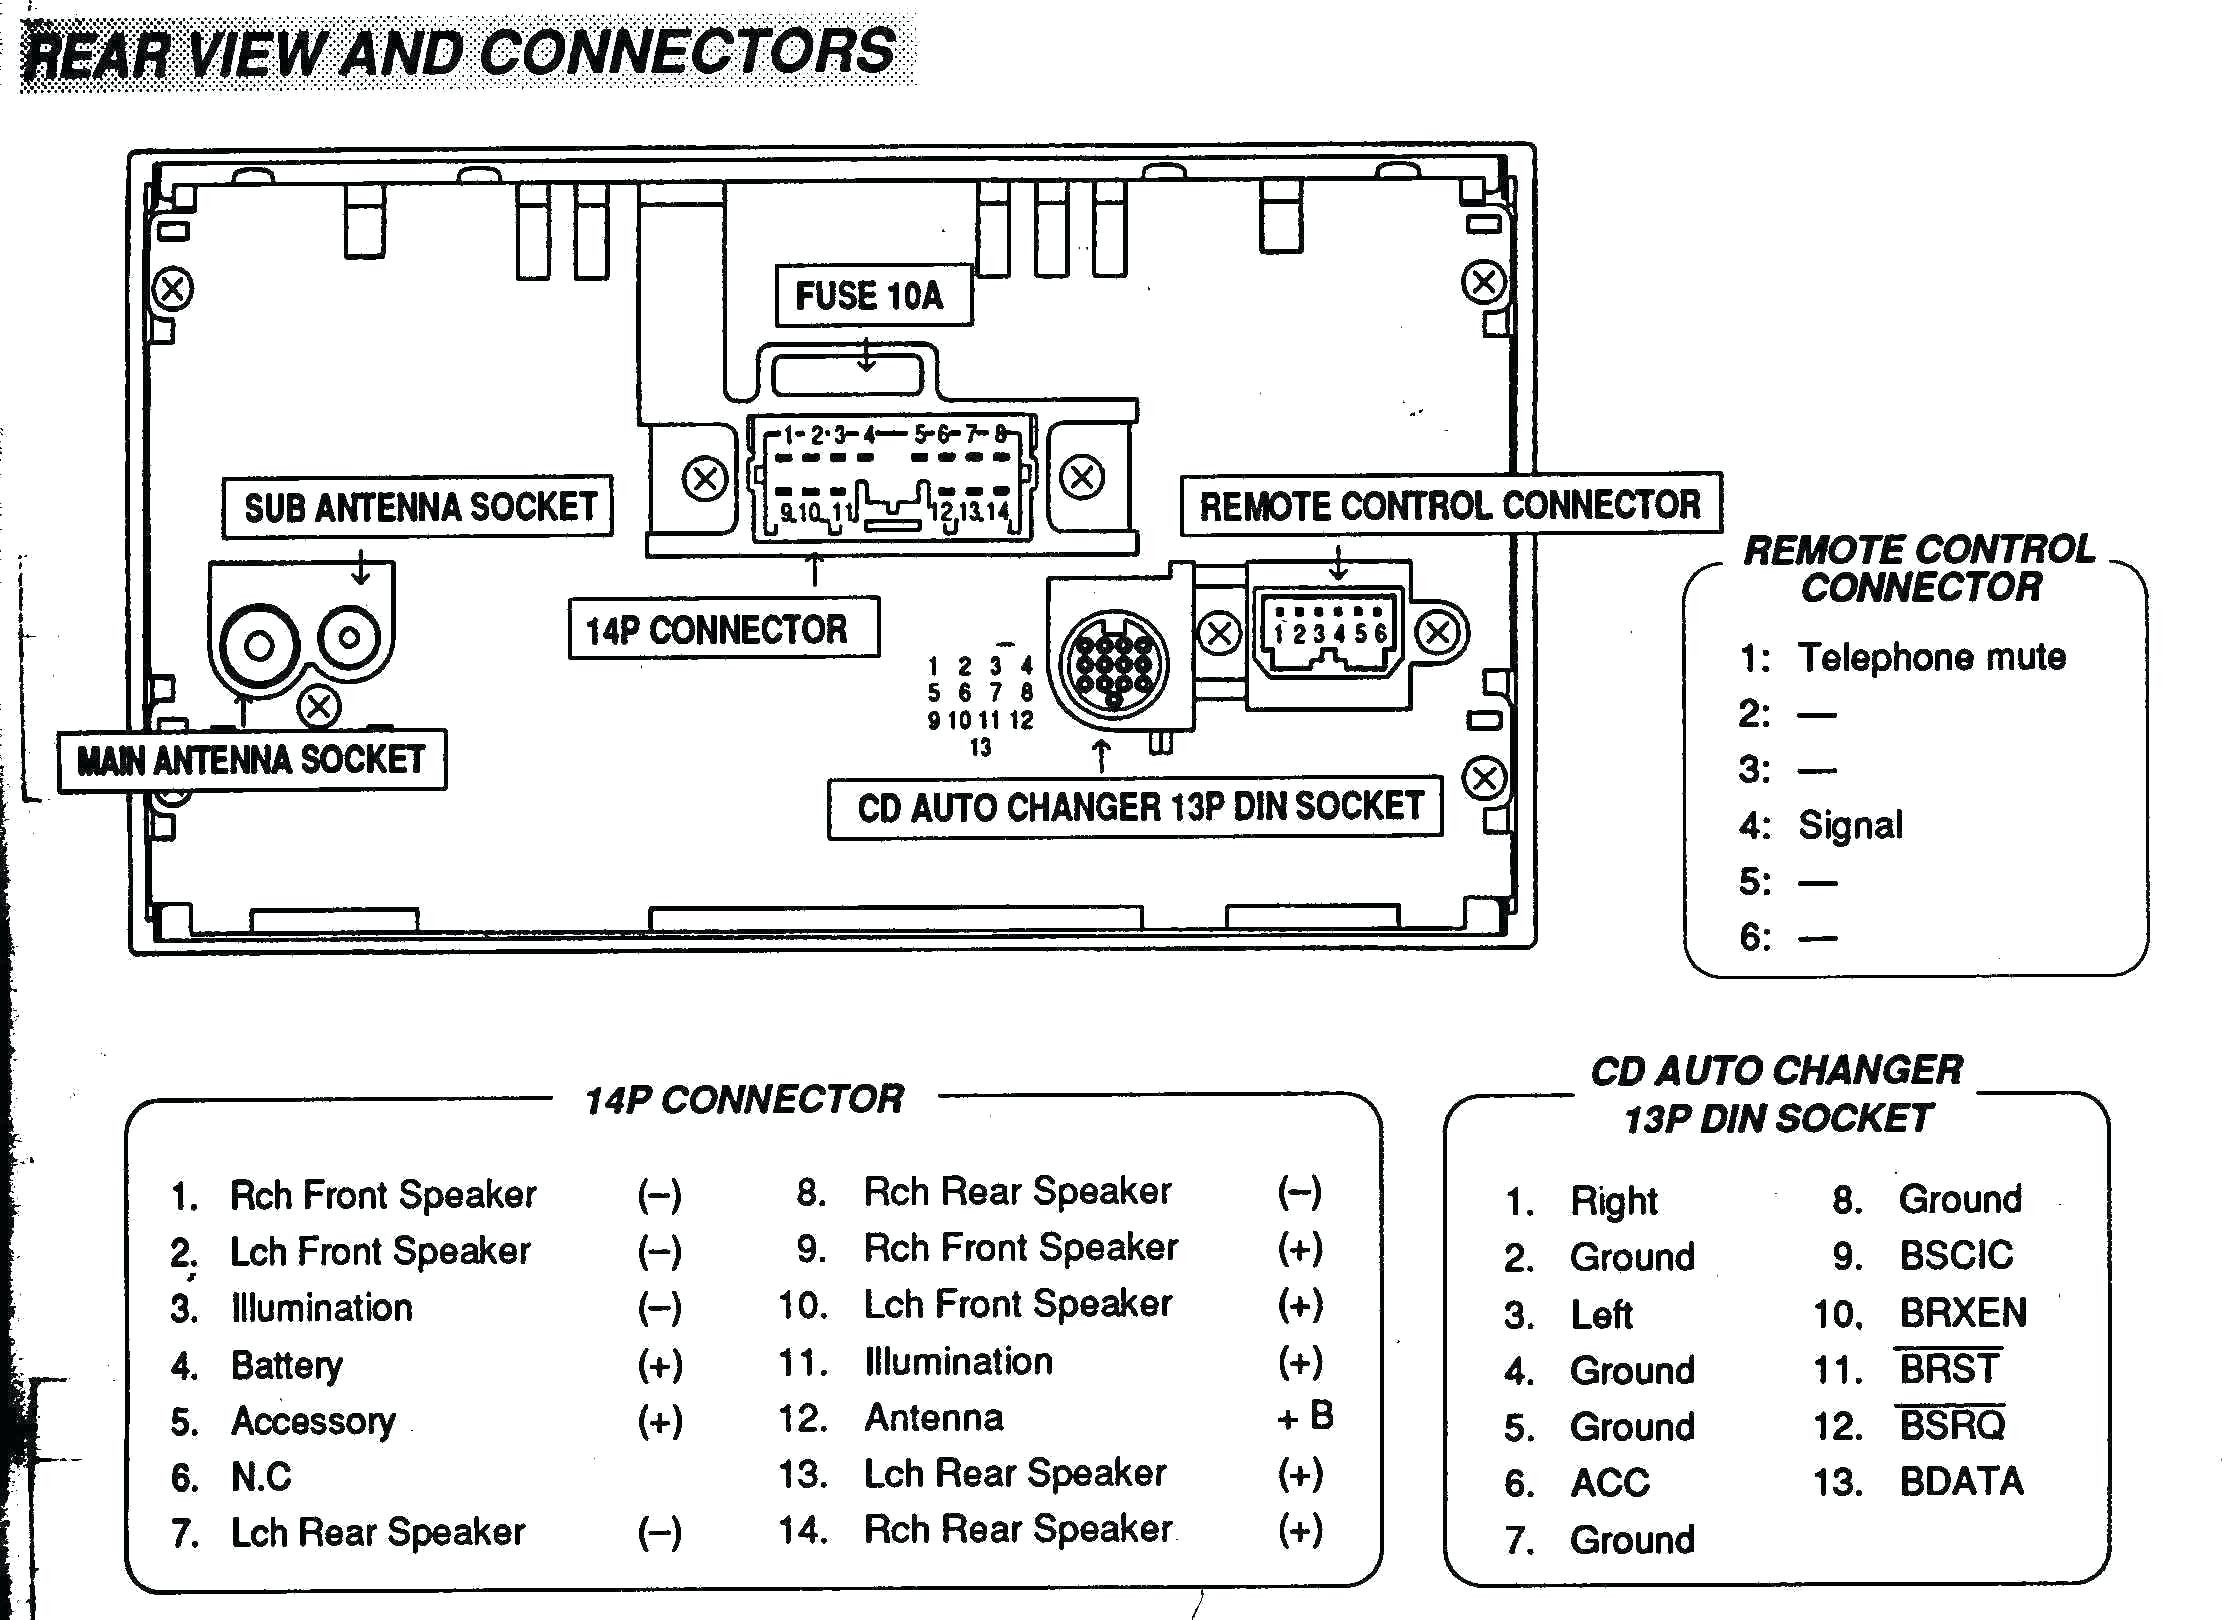 Chrysler Pacifica Engine Diagram Motor Mount 3 8 2004 Car Radio Wiring Stereo Fresh Diagra Of